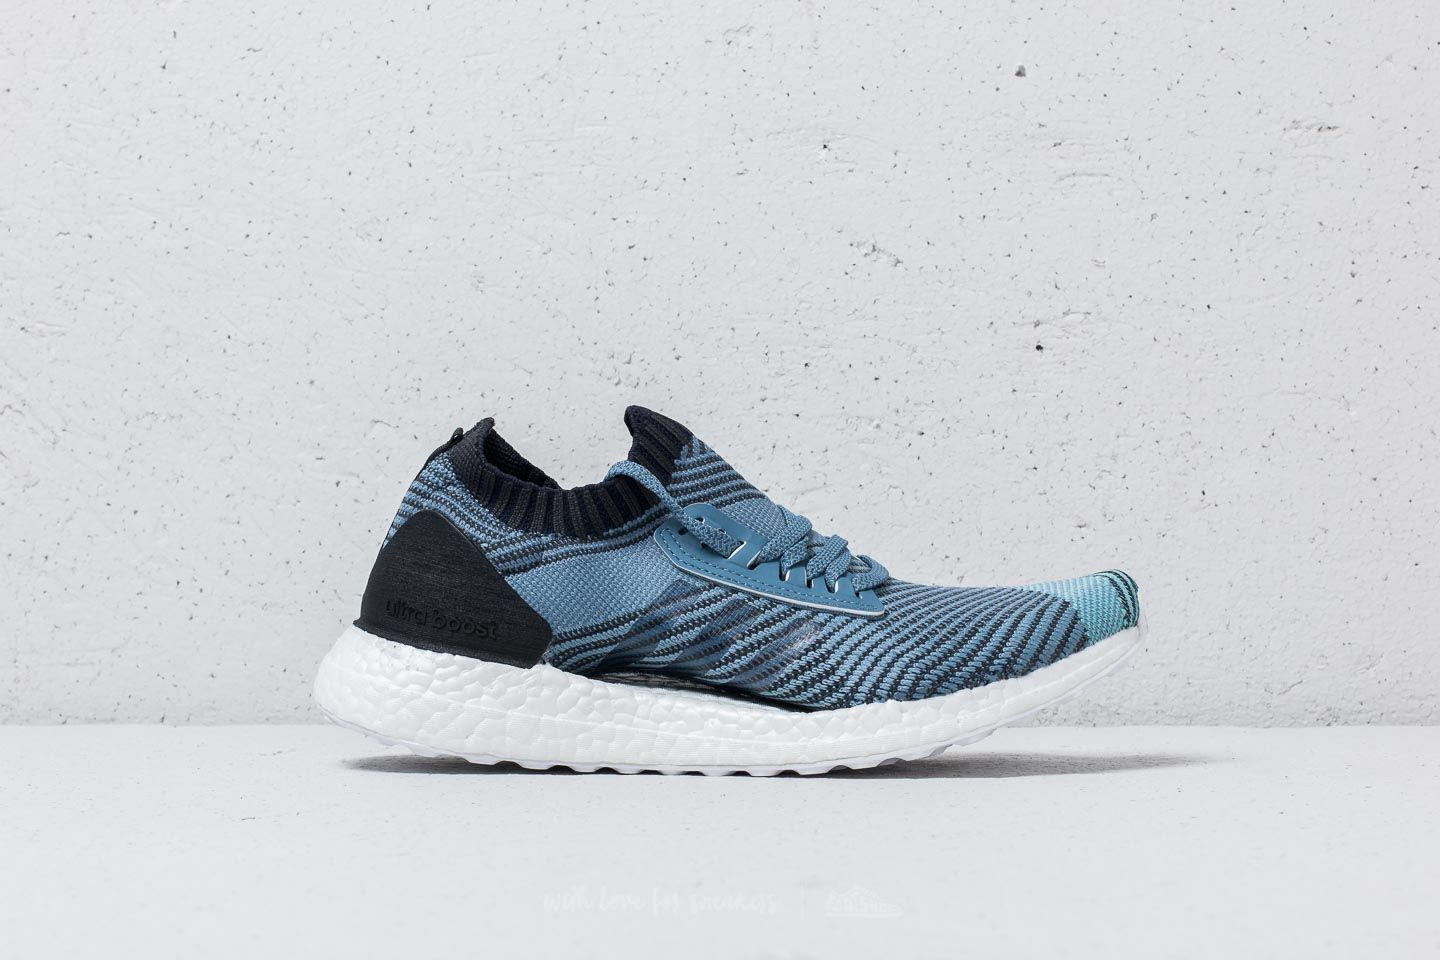 7a598b13adde3 adidas x Parley Ultraboost X Raw Grey  Carbon  Legend Ink at a great price